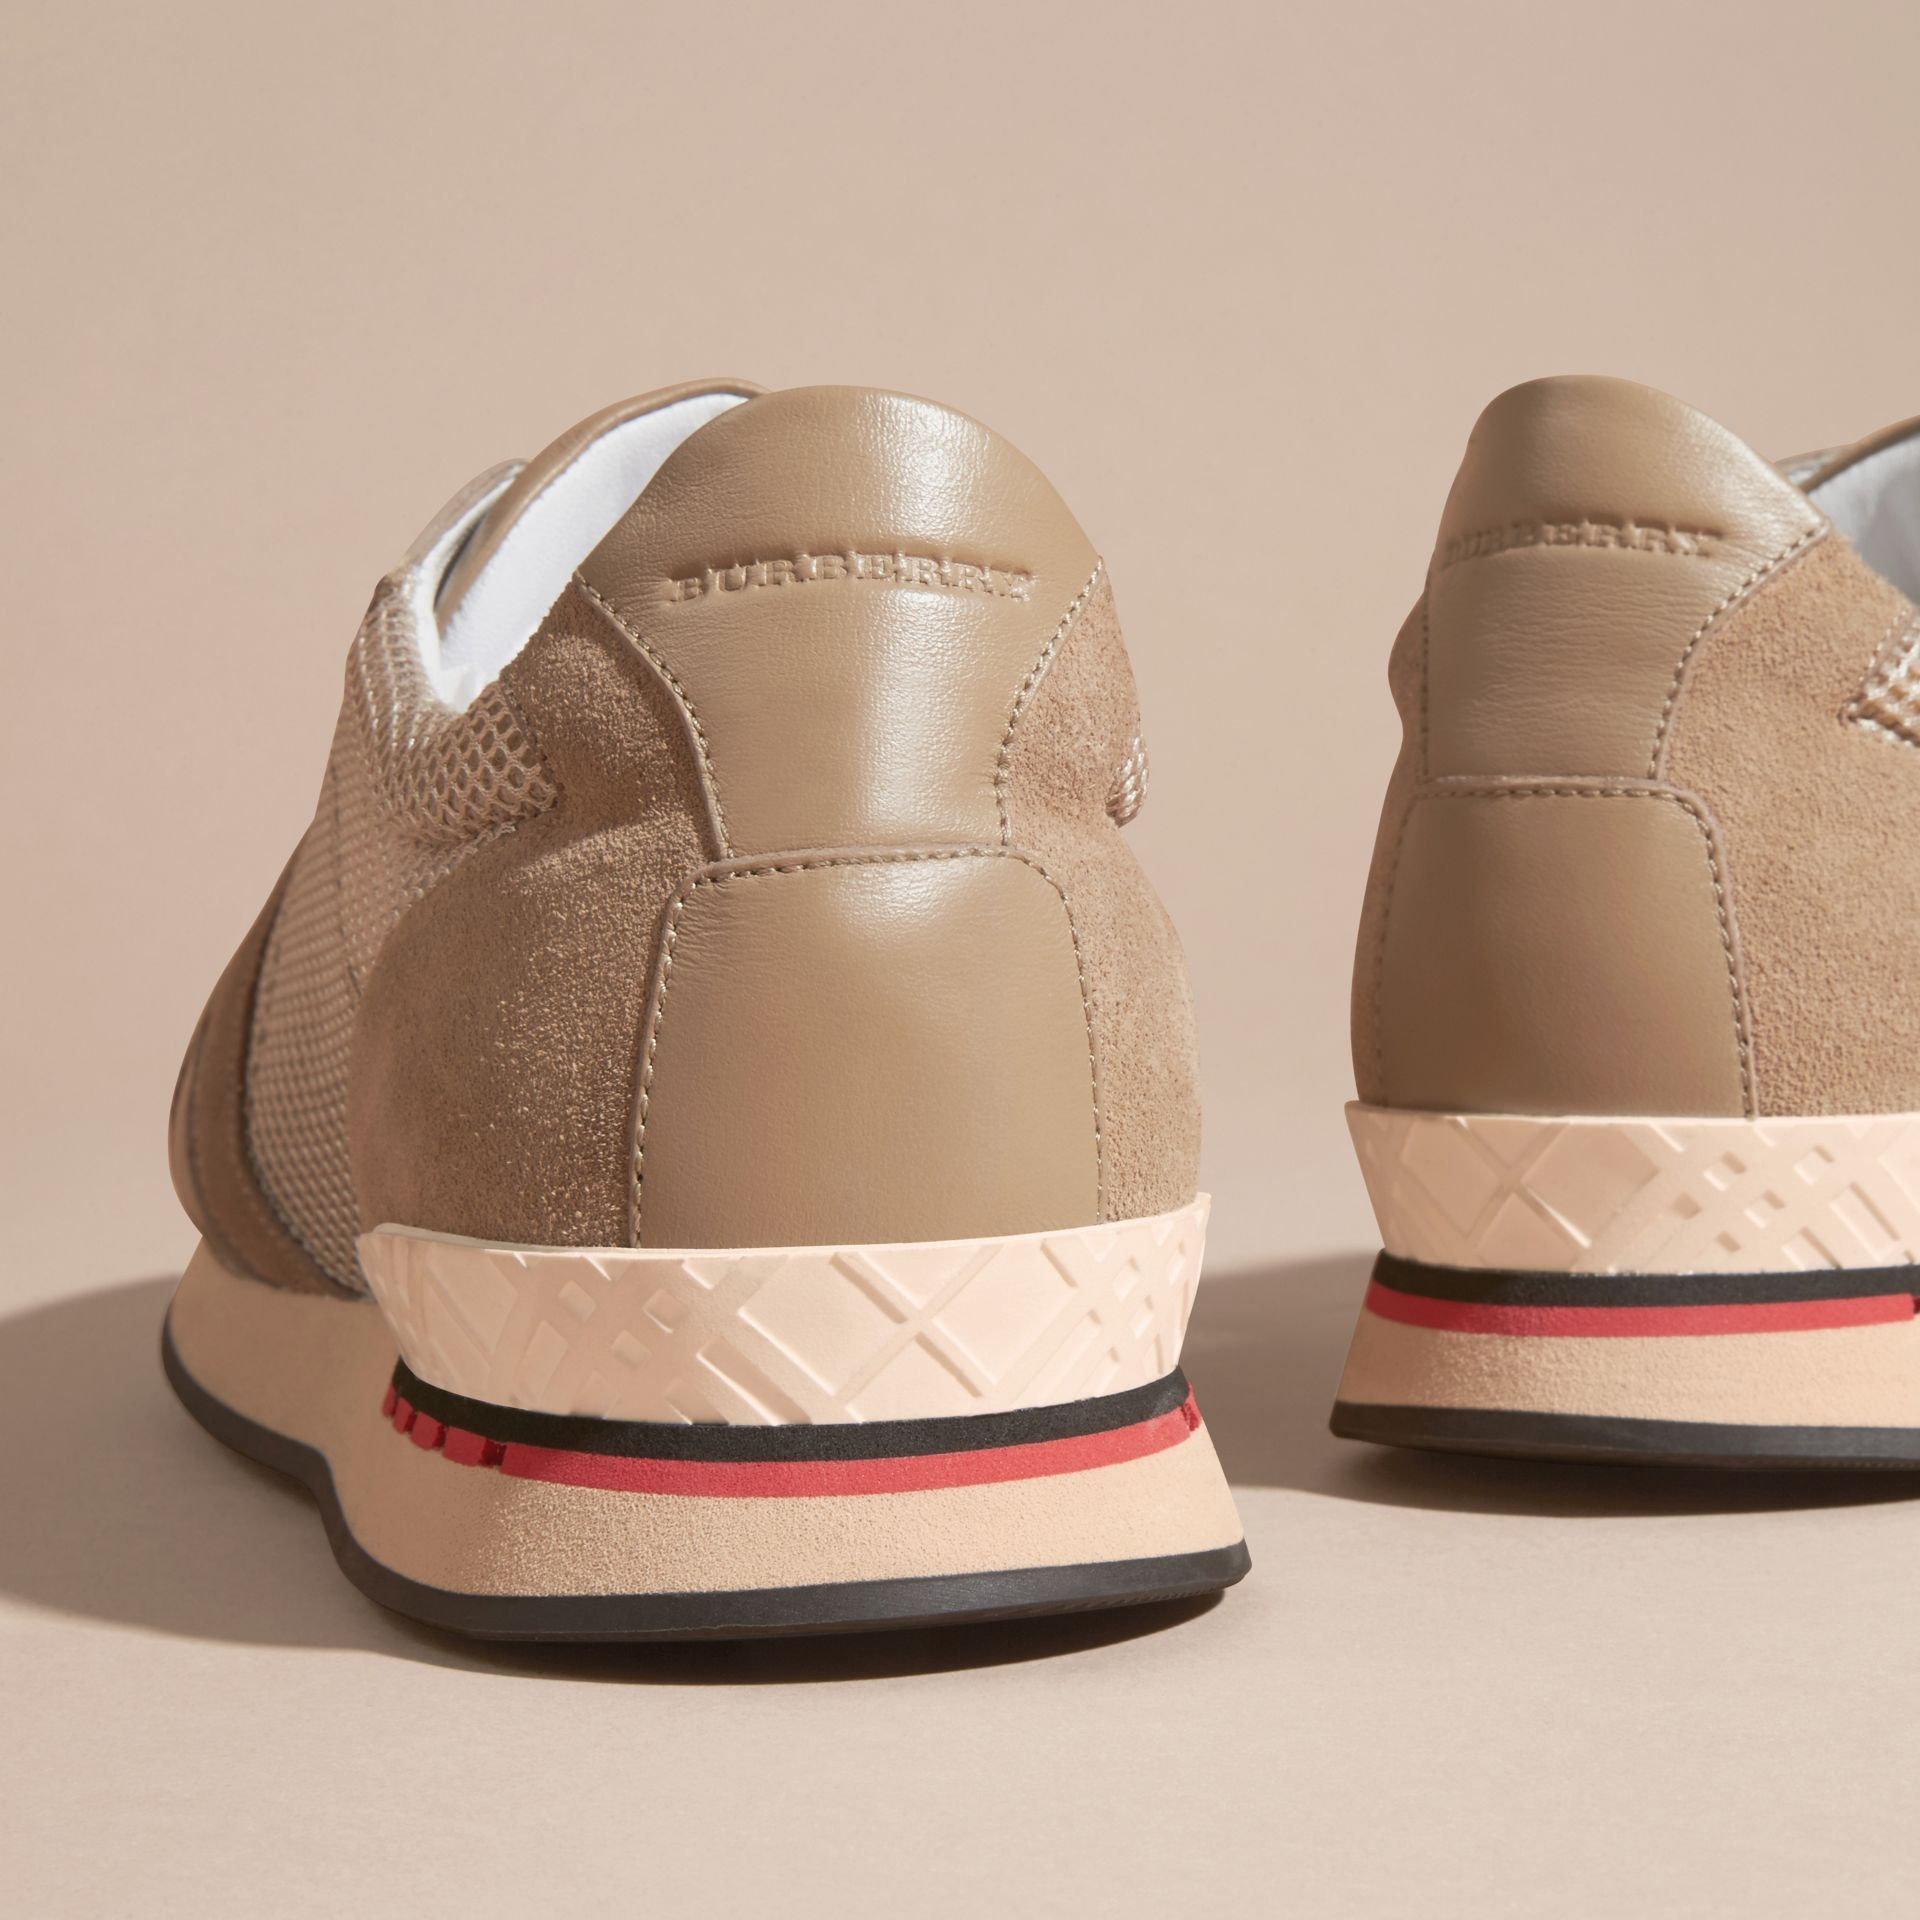 Camel The Field Sneaker in Suede and Mesh Camel - gallery image 4